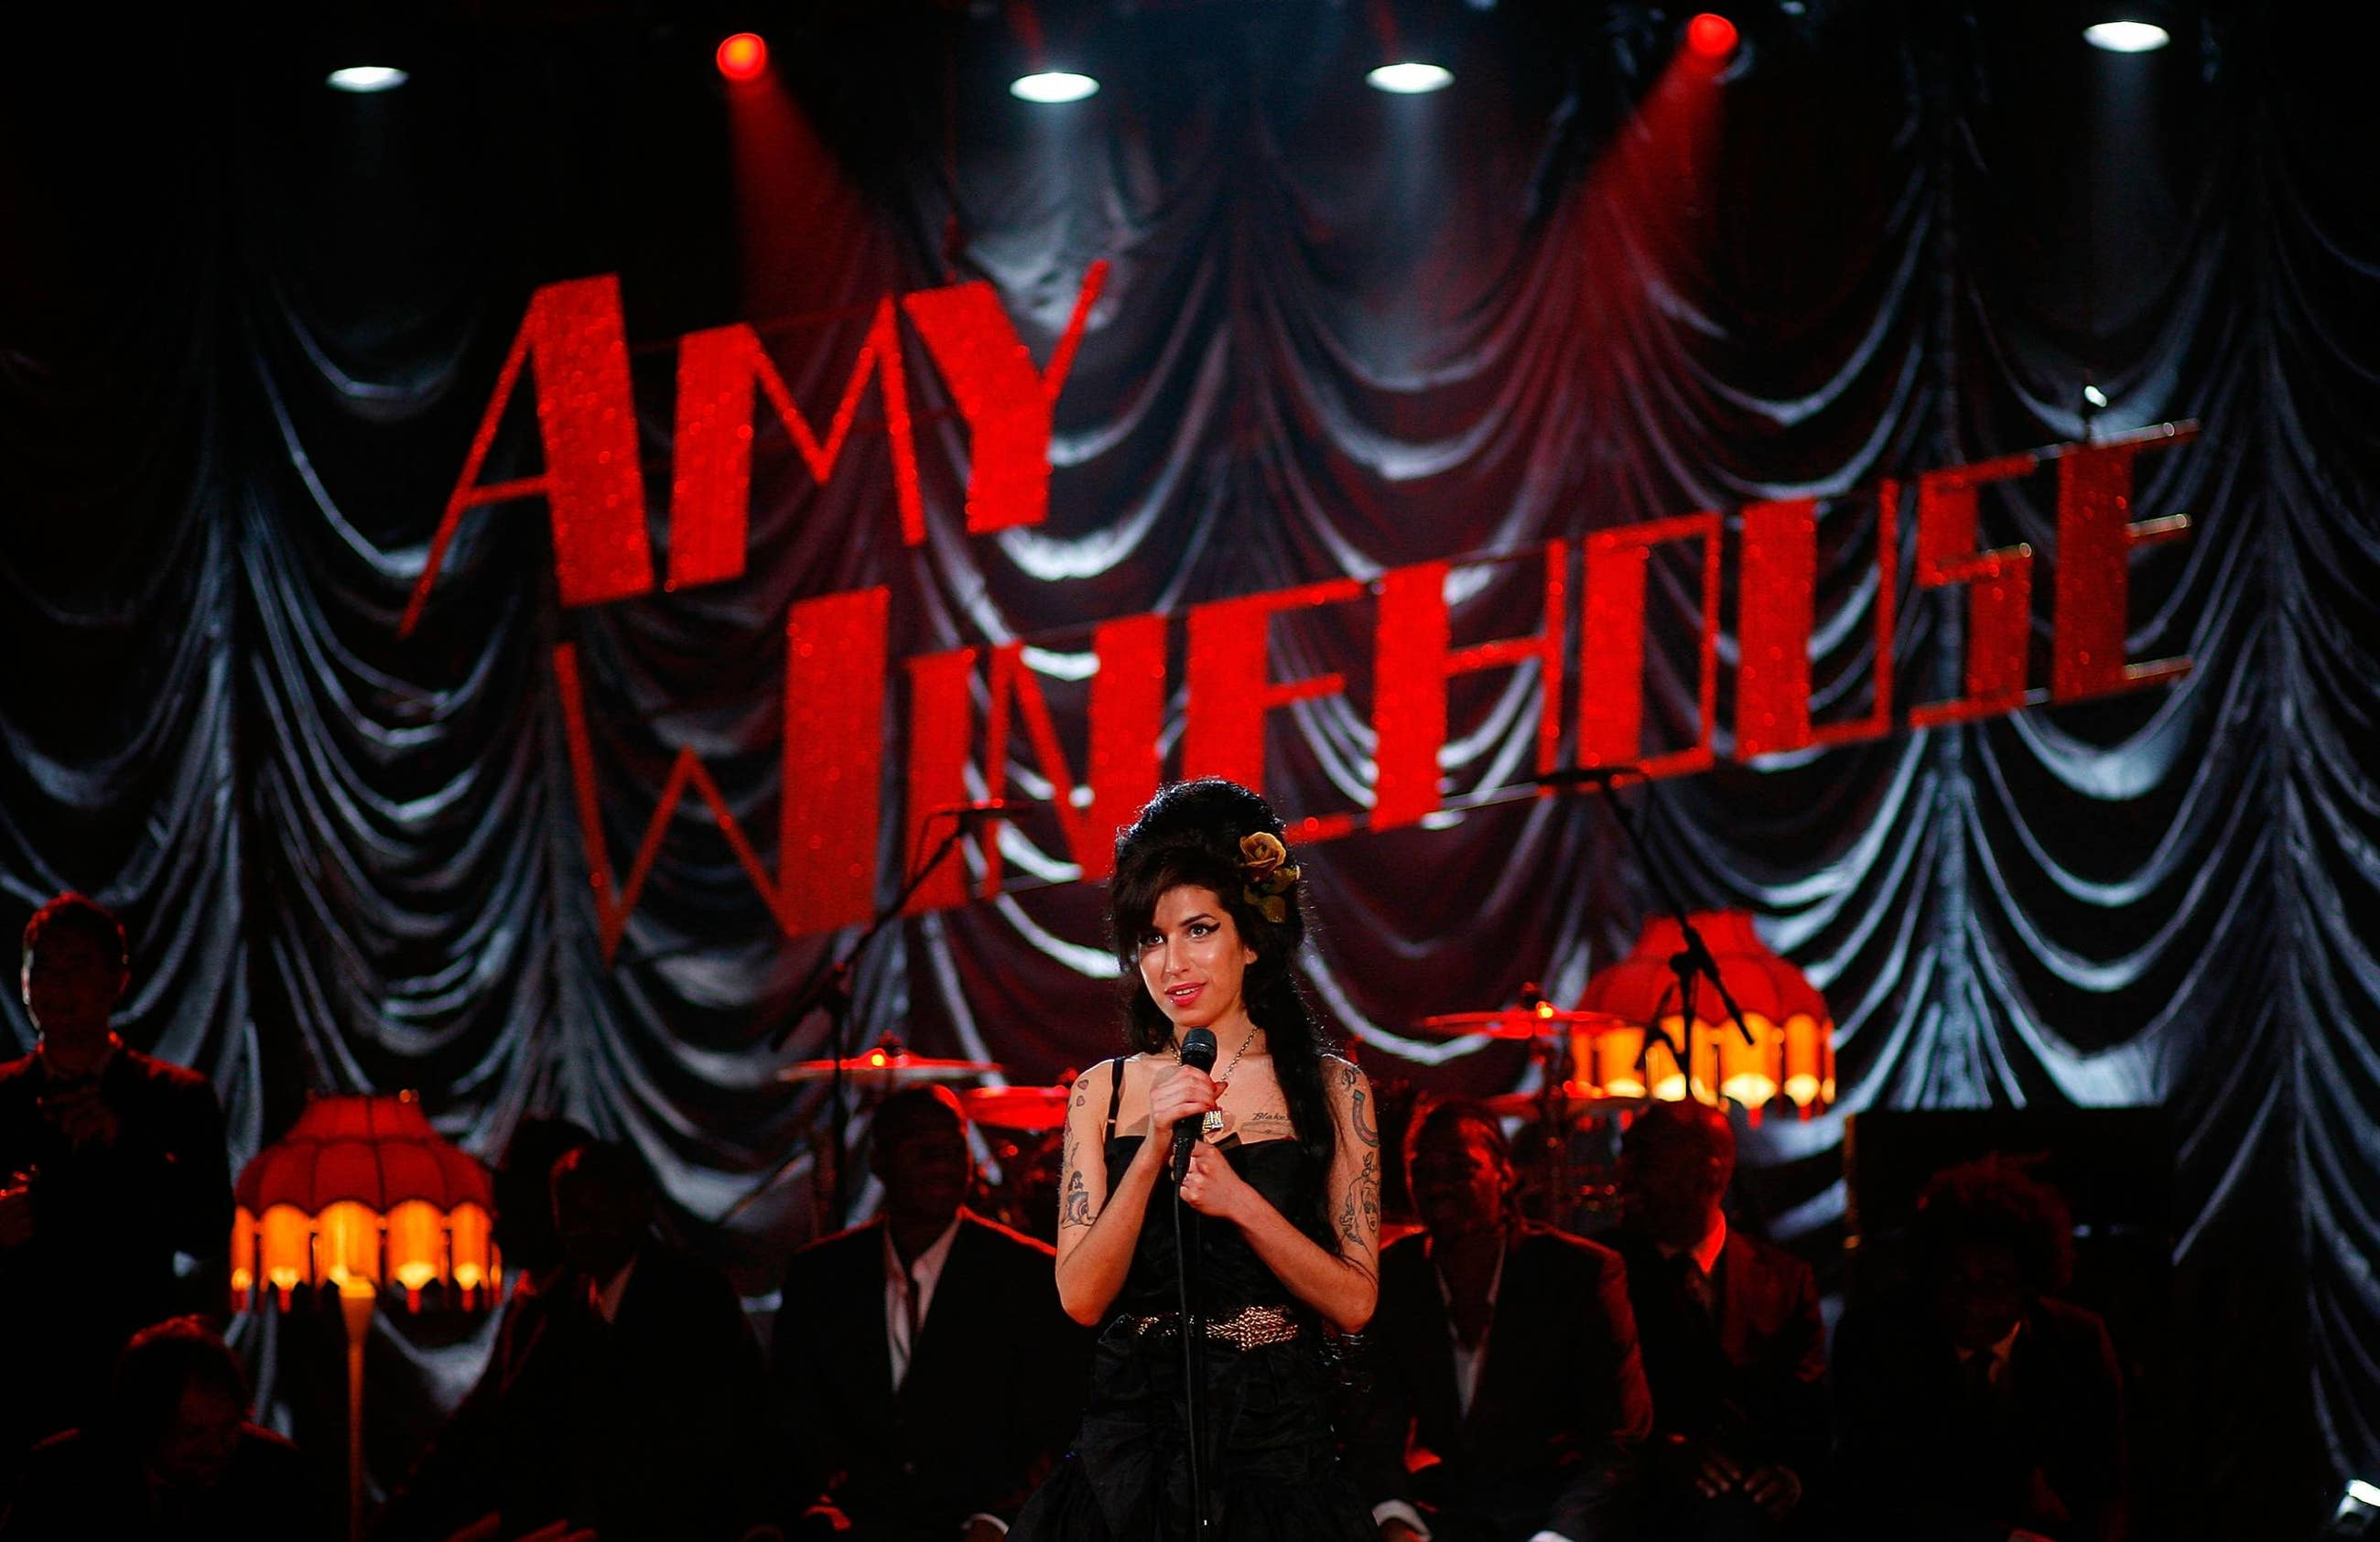 Amy Winehouse performs at the 50th GRAMMY Awards live via satellite from London